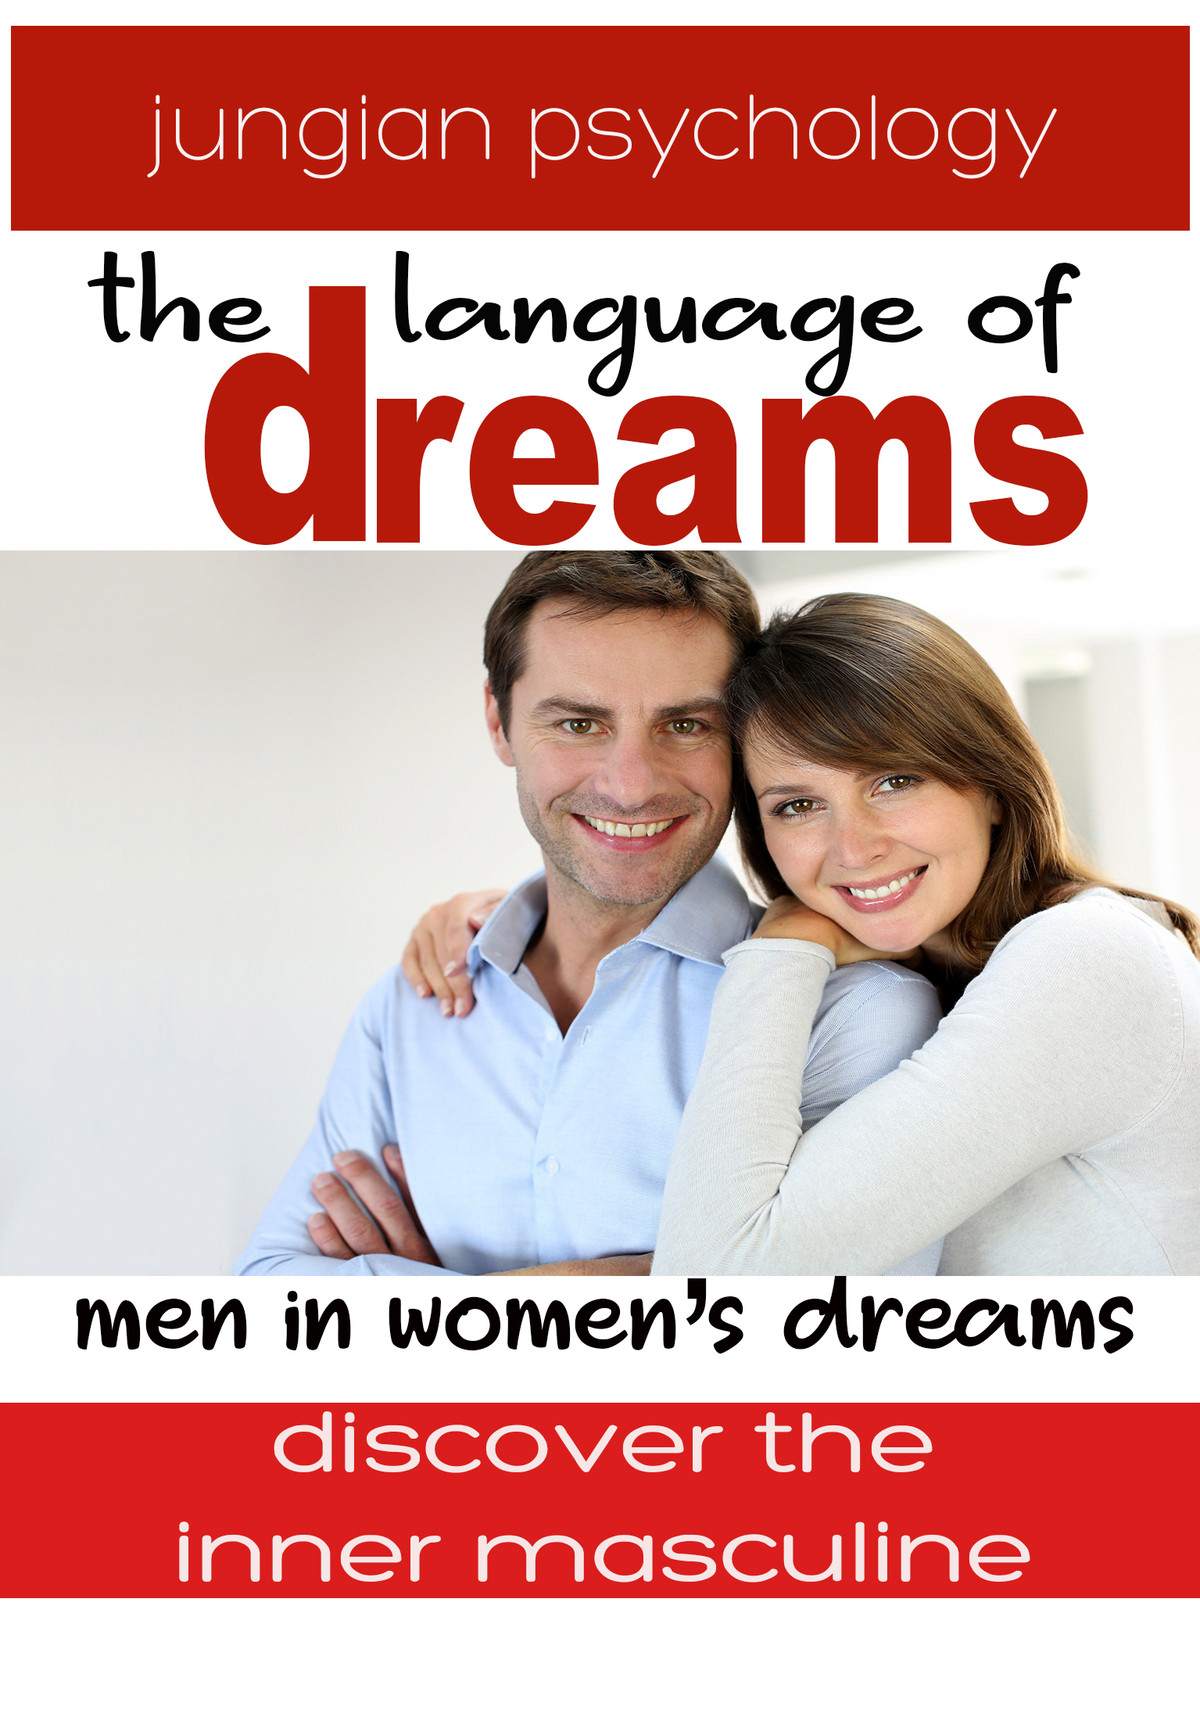 DR104 - Language Of Dreams Men In Women's Dreams